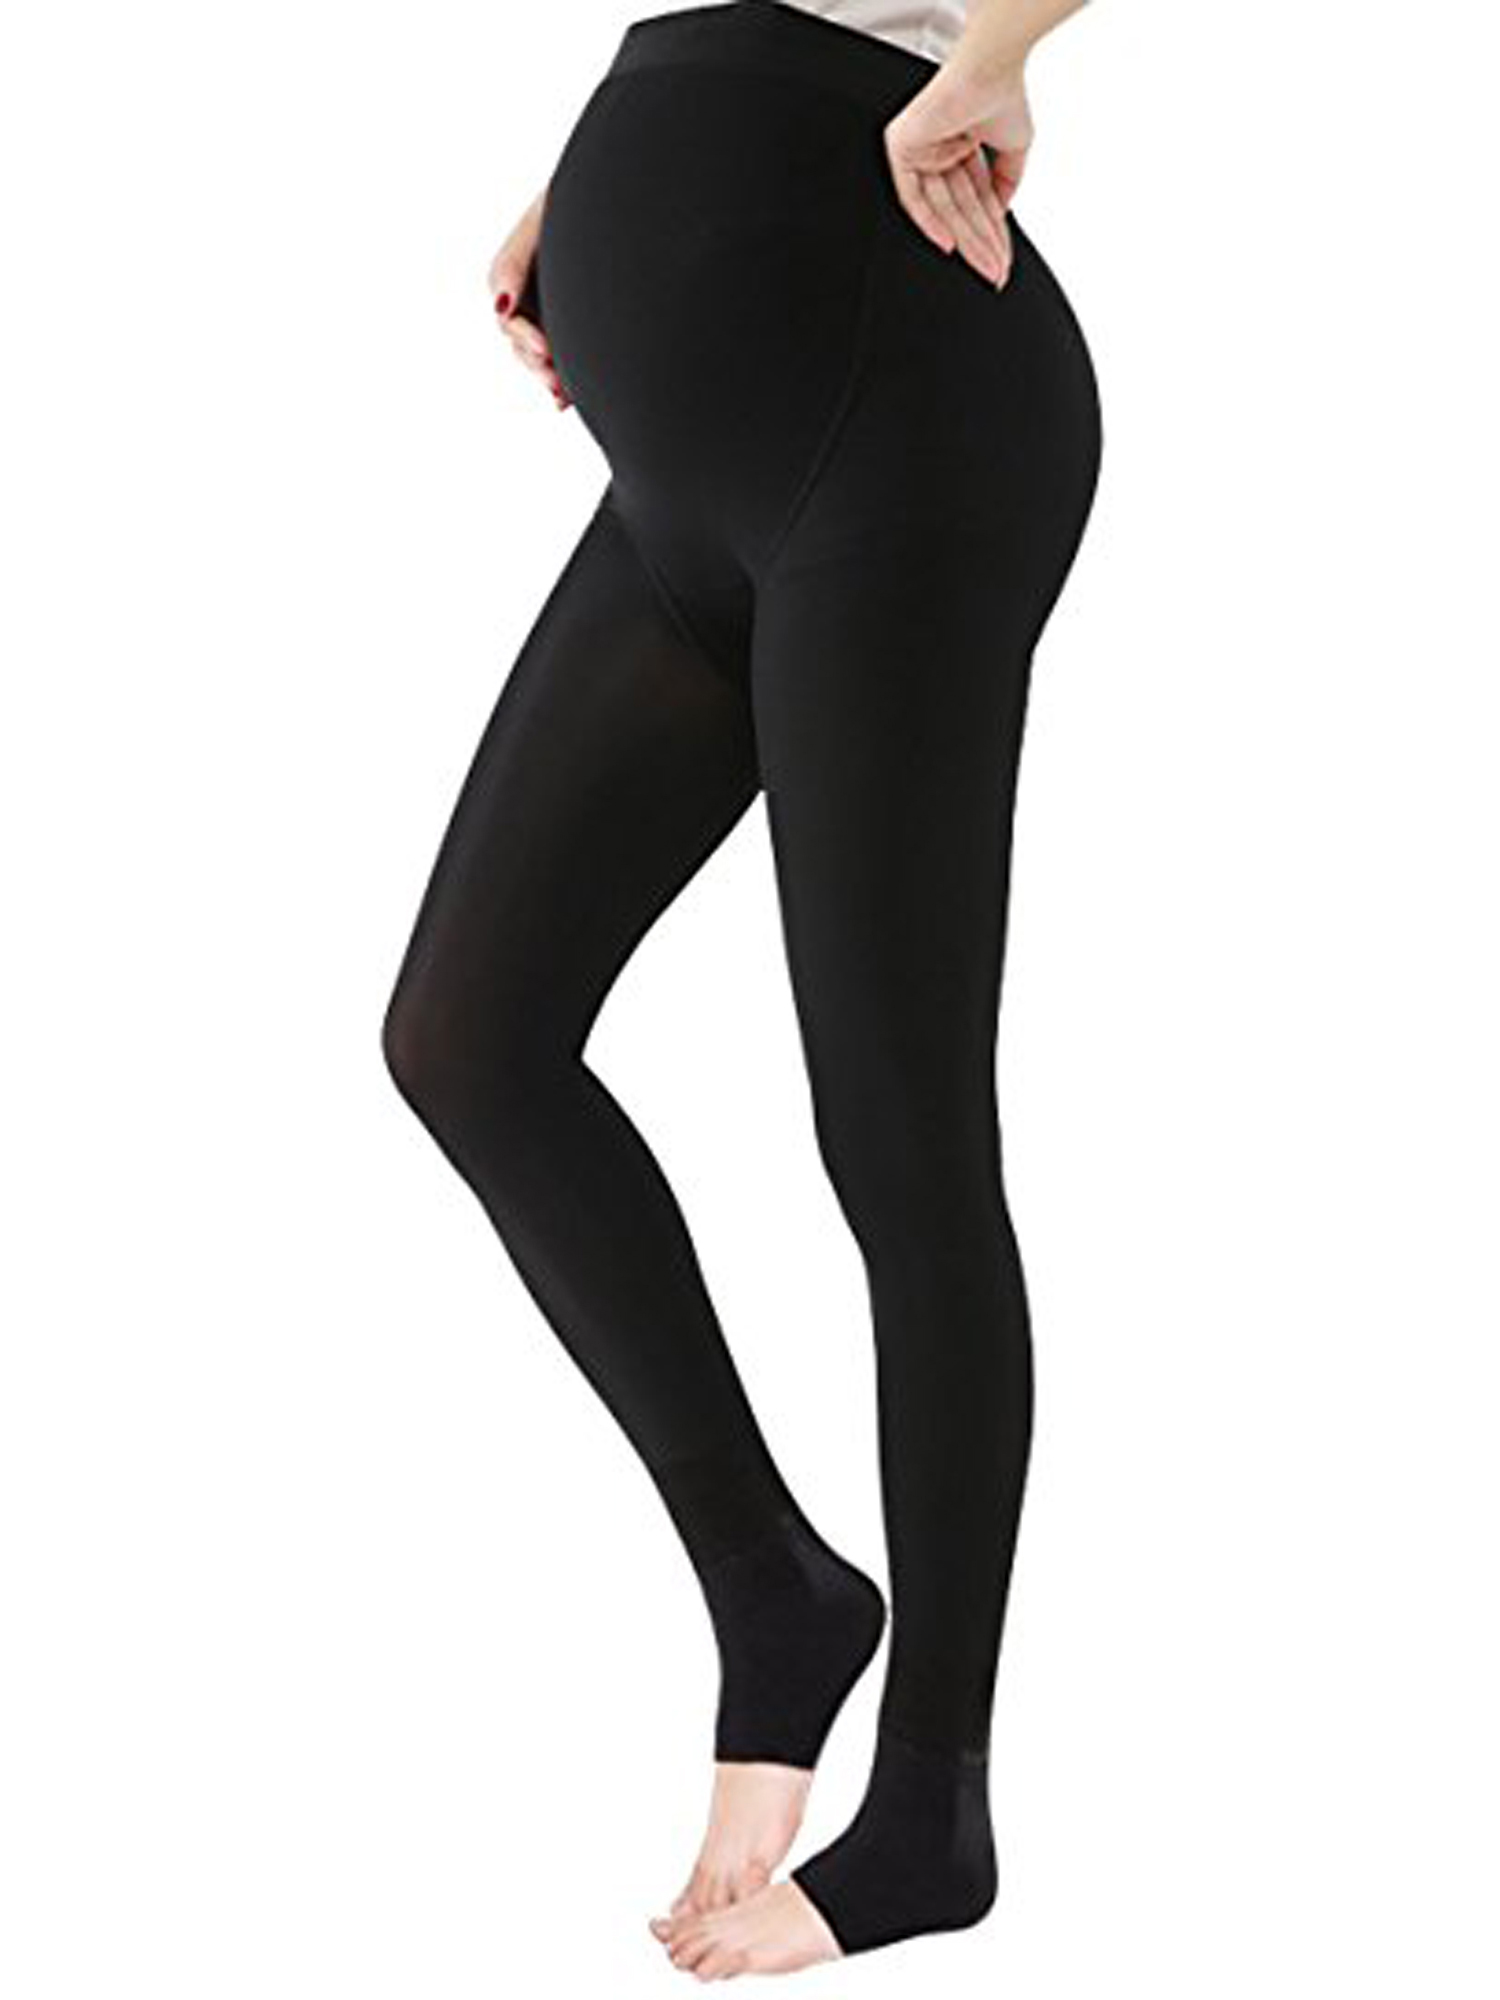 LELINTA Women's Maternity Pregnant Tights Warm Thick Pearl Cashmere Adjustable Support Stirrup Legging